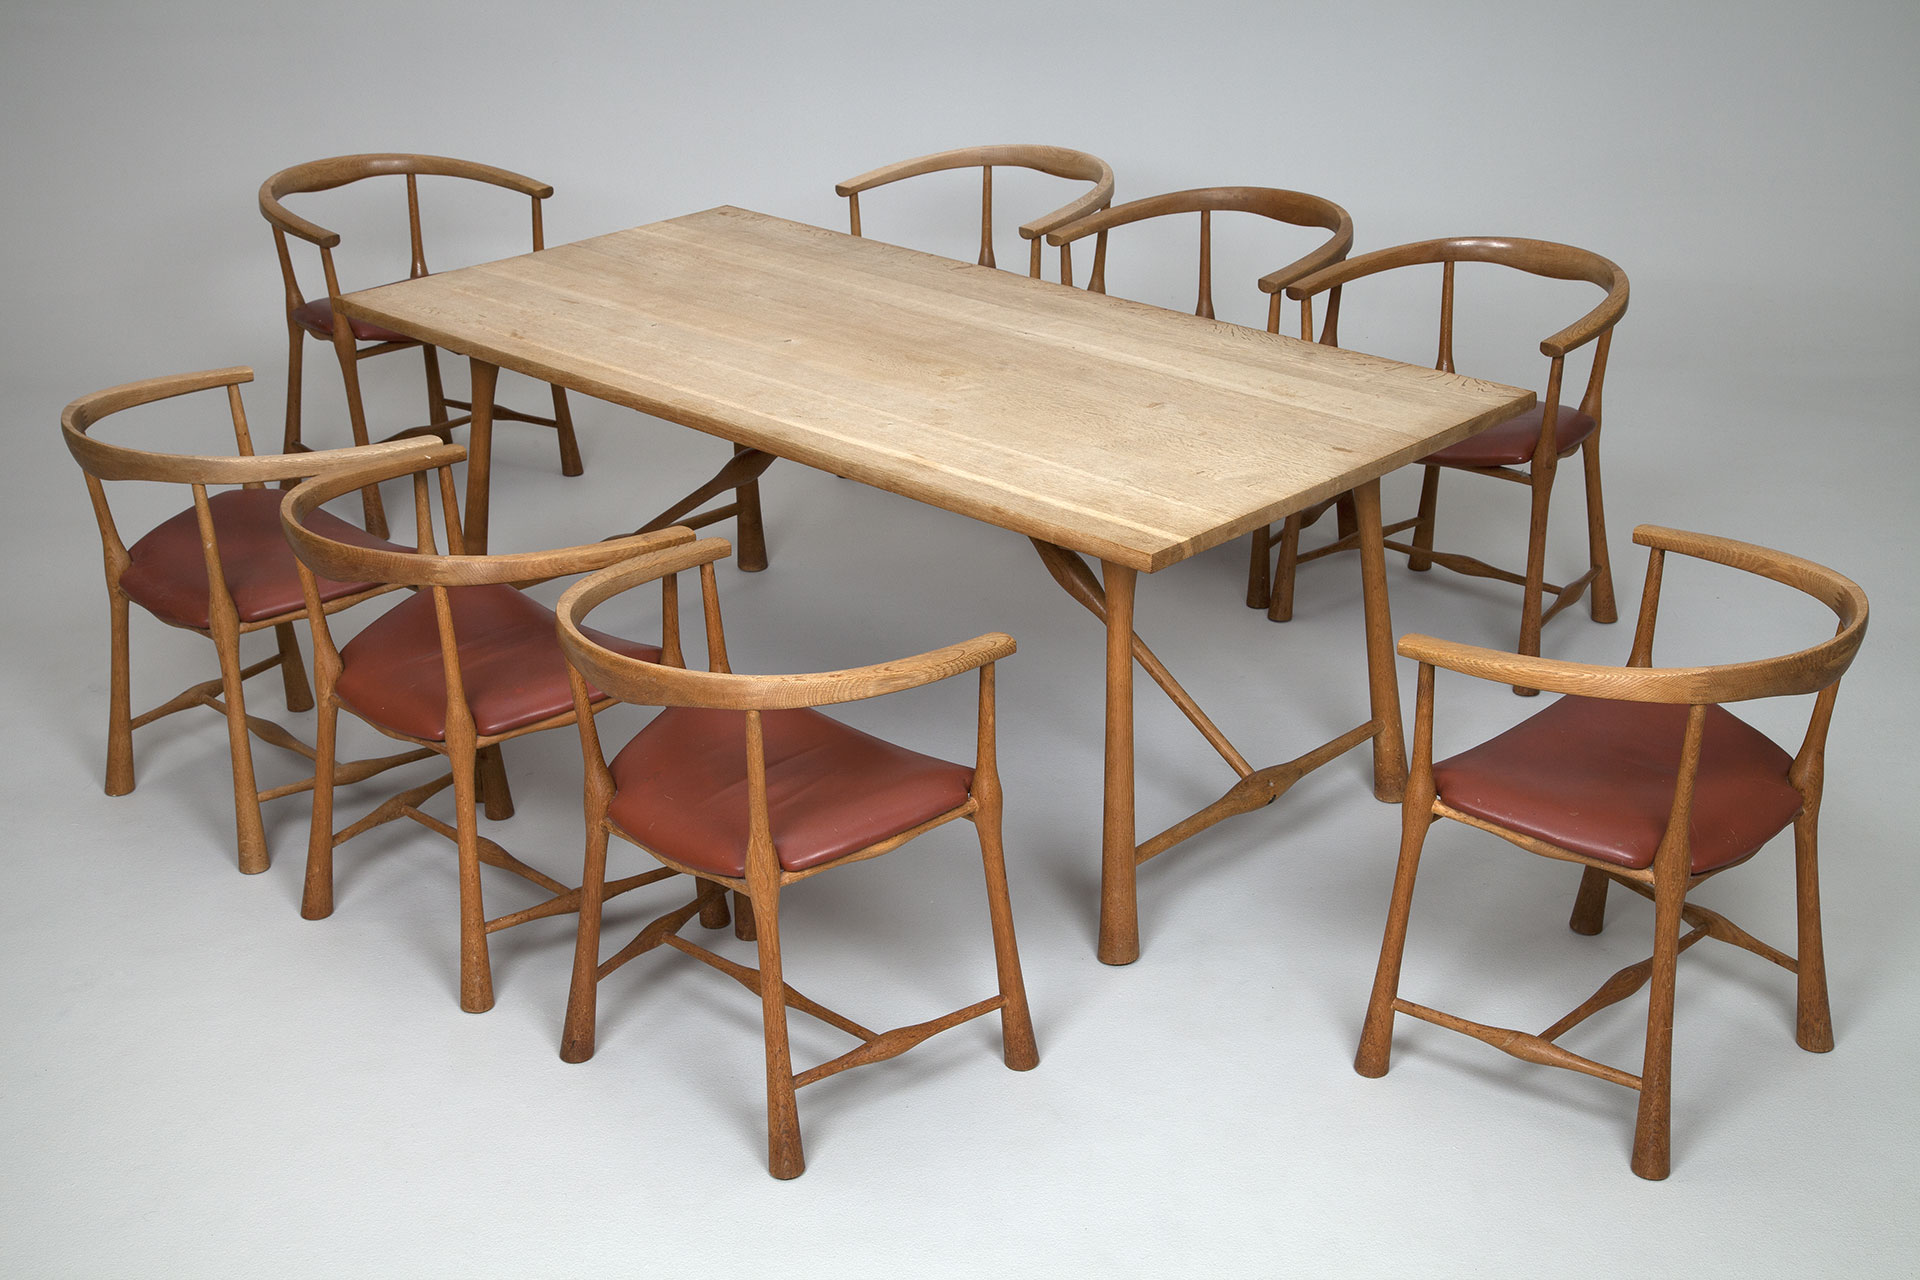 jacksons dining table and eight chairs jens quistgaard